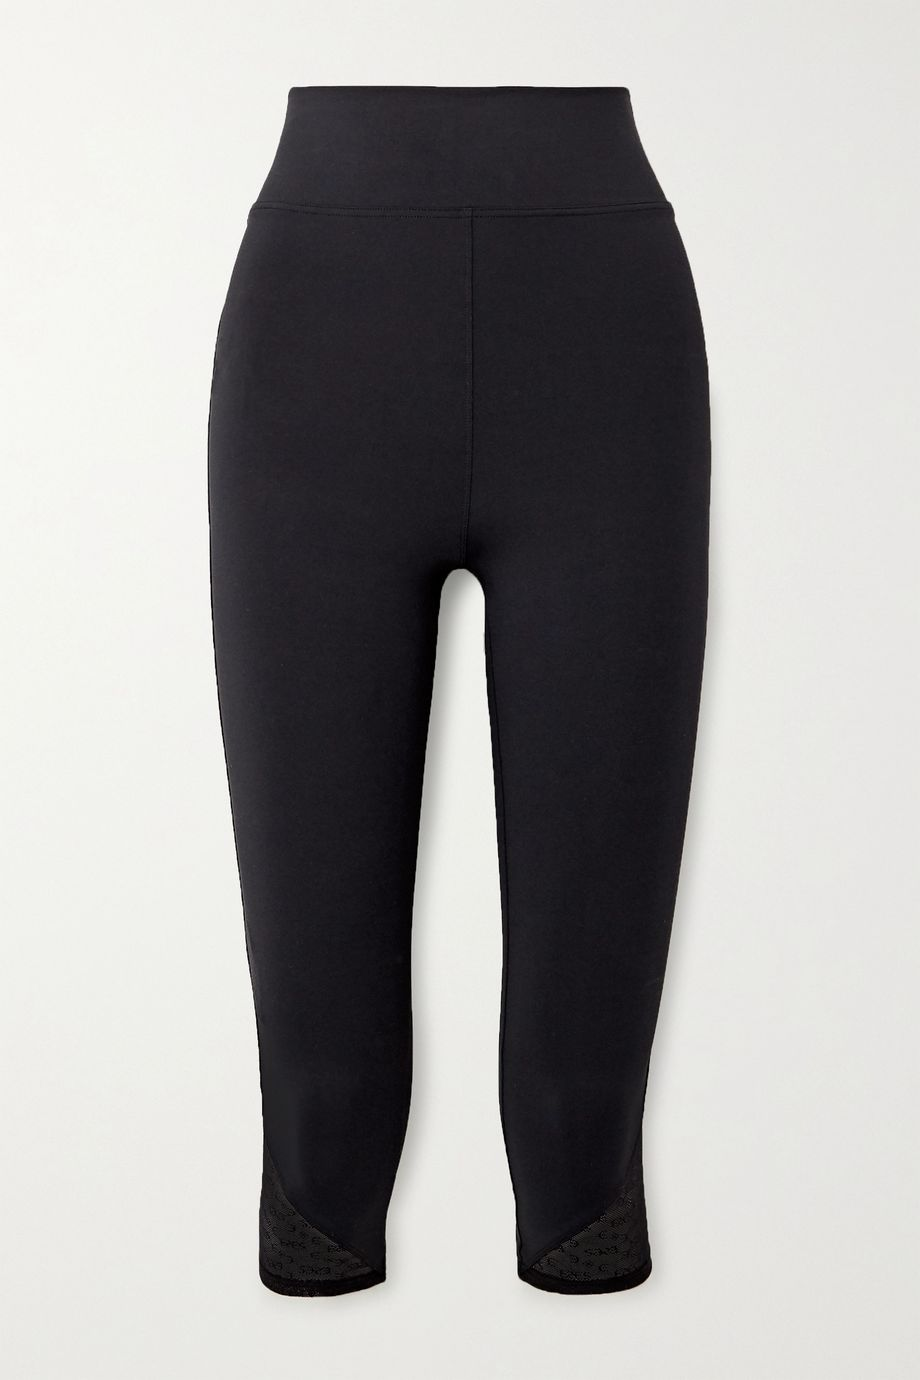 Eres Cropped Calais lace-trimmed stretch leggings